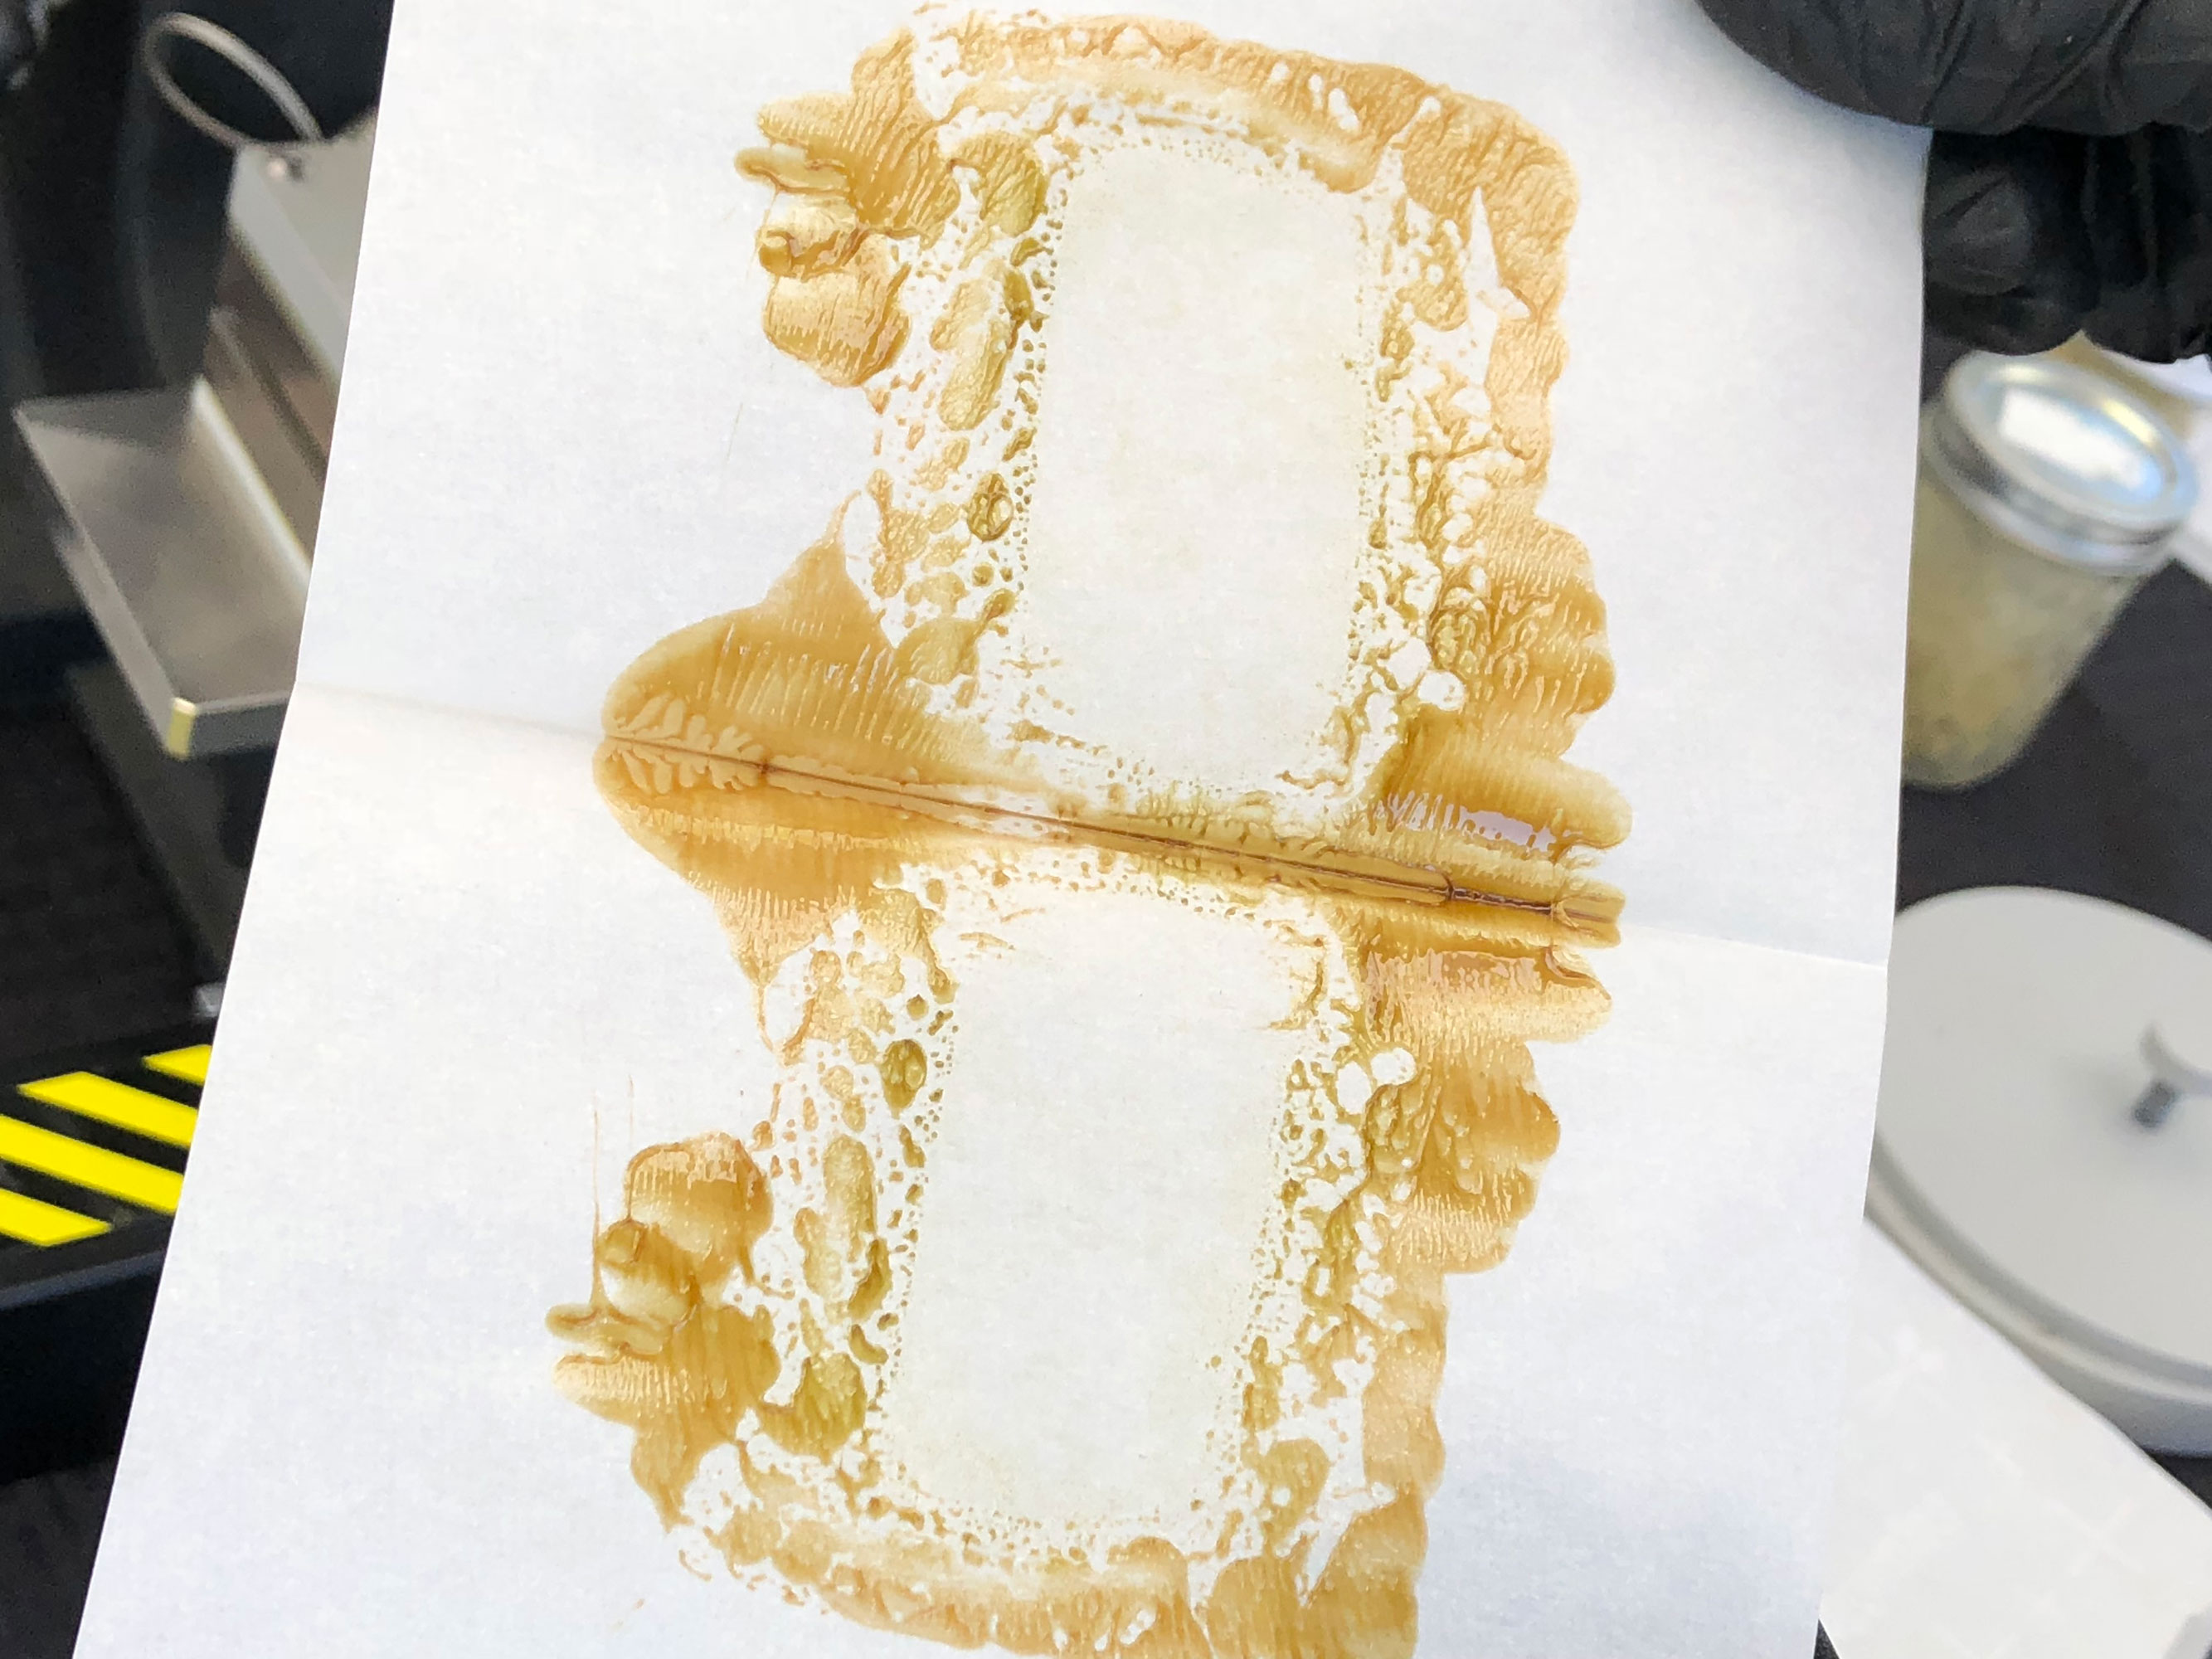 CBD Flower Rosin - Result 2